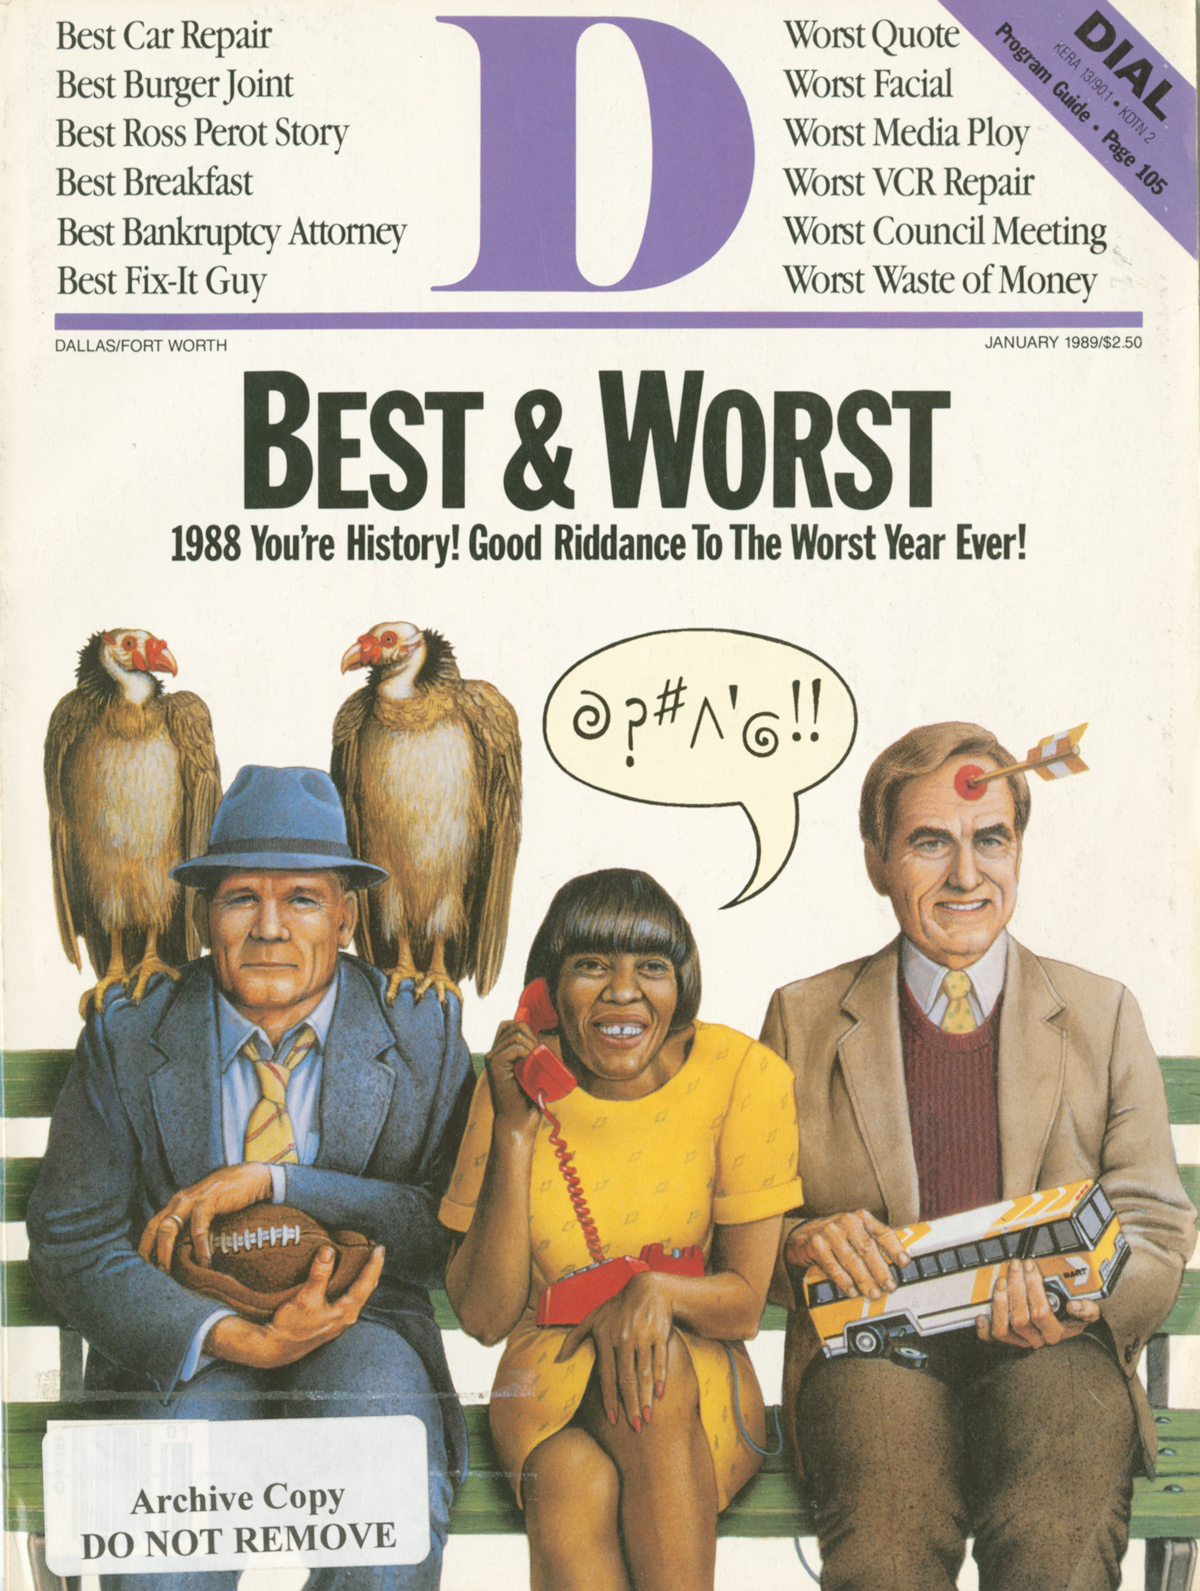 January 1989 cover